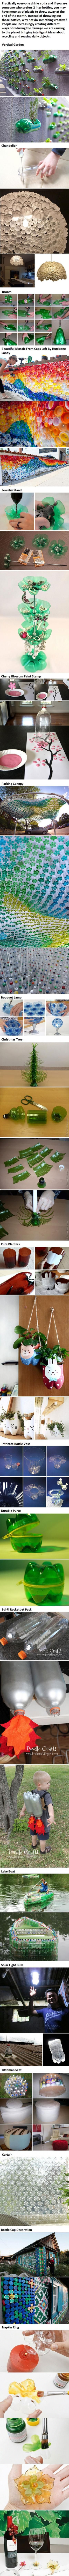 Some People Just Throw Bottles Away, Others Make This… -   Misc